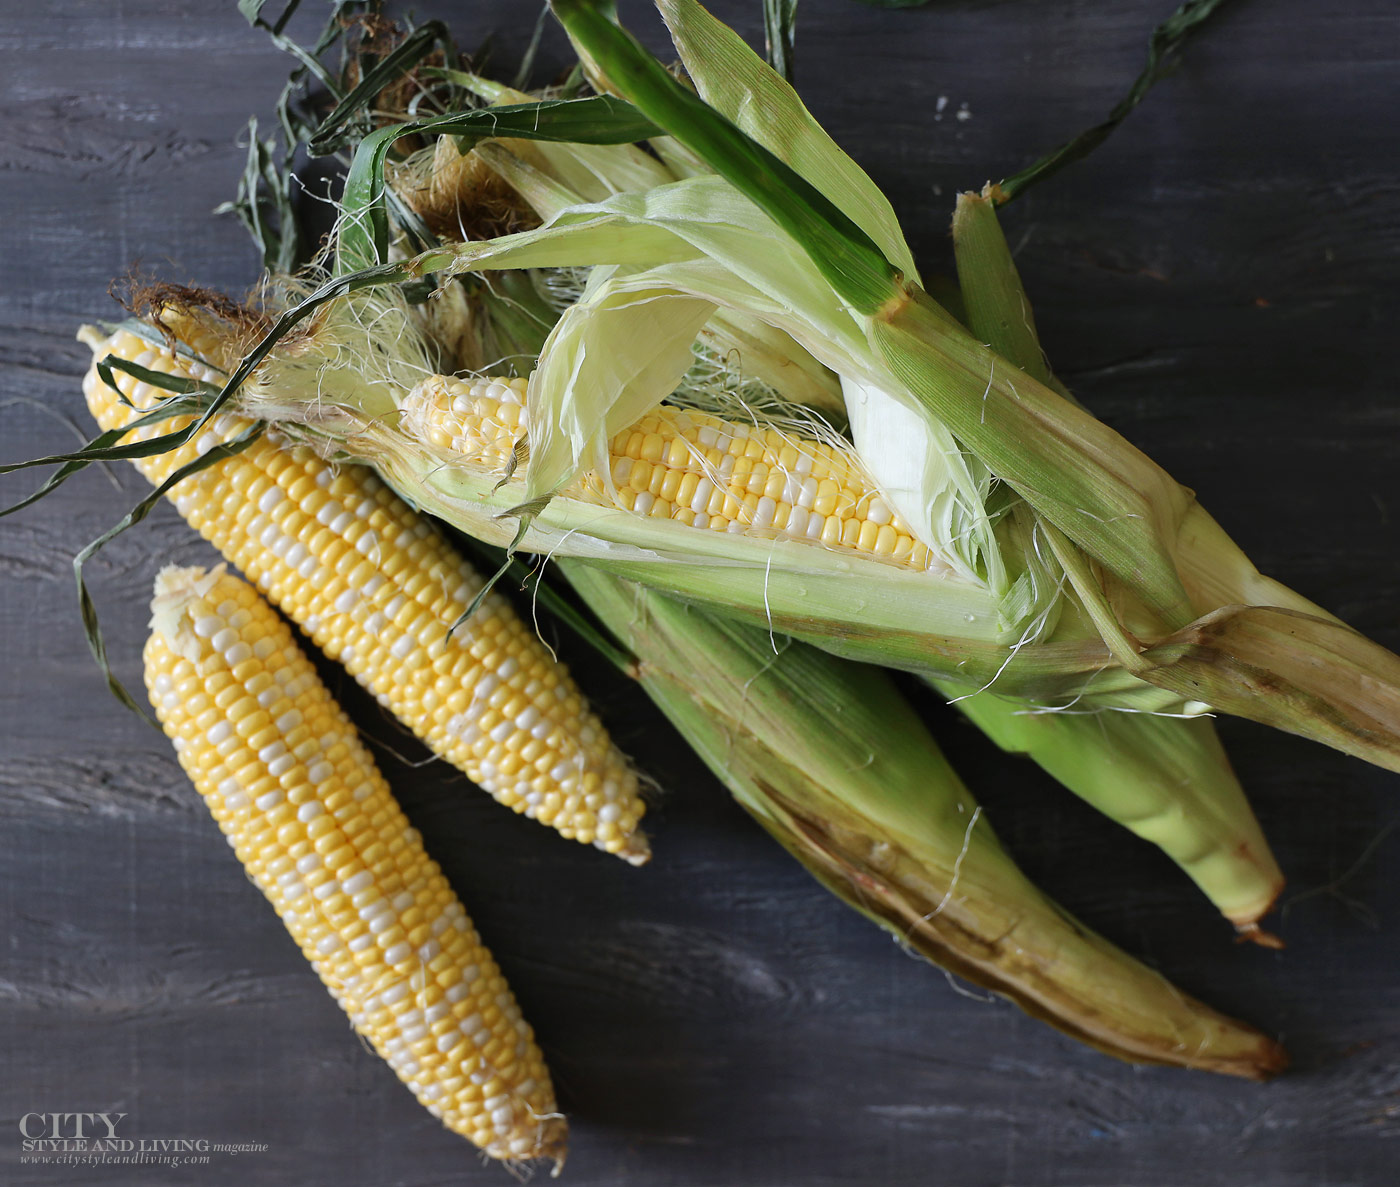 City Style and Living Magazine Fall 2019 Food Gourmet finds Corn Market